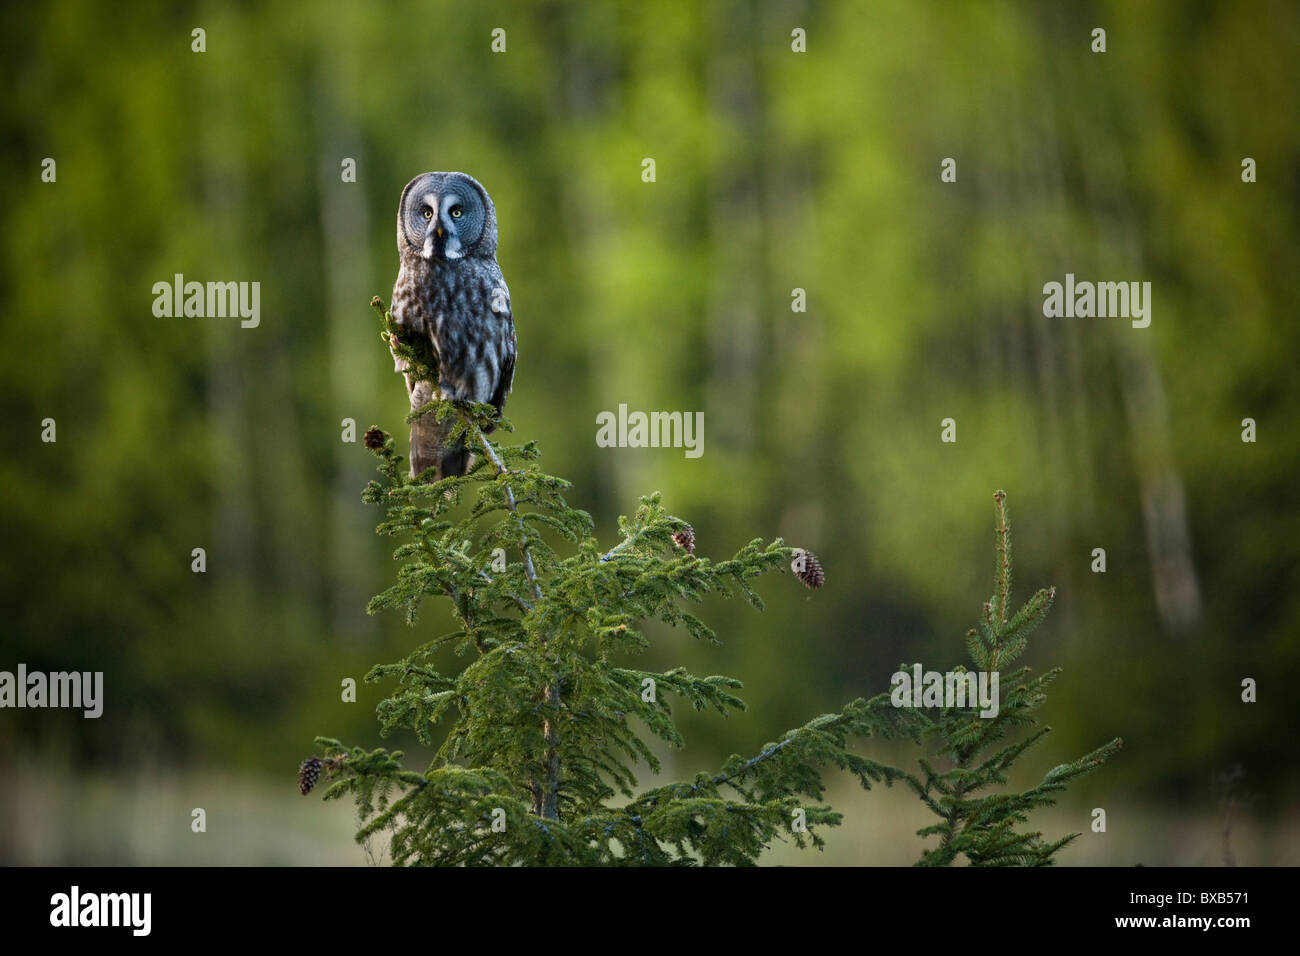 Owl perching on branch - Stock Image